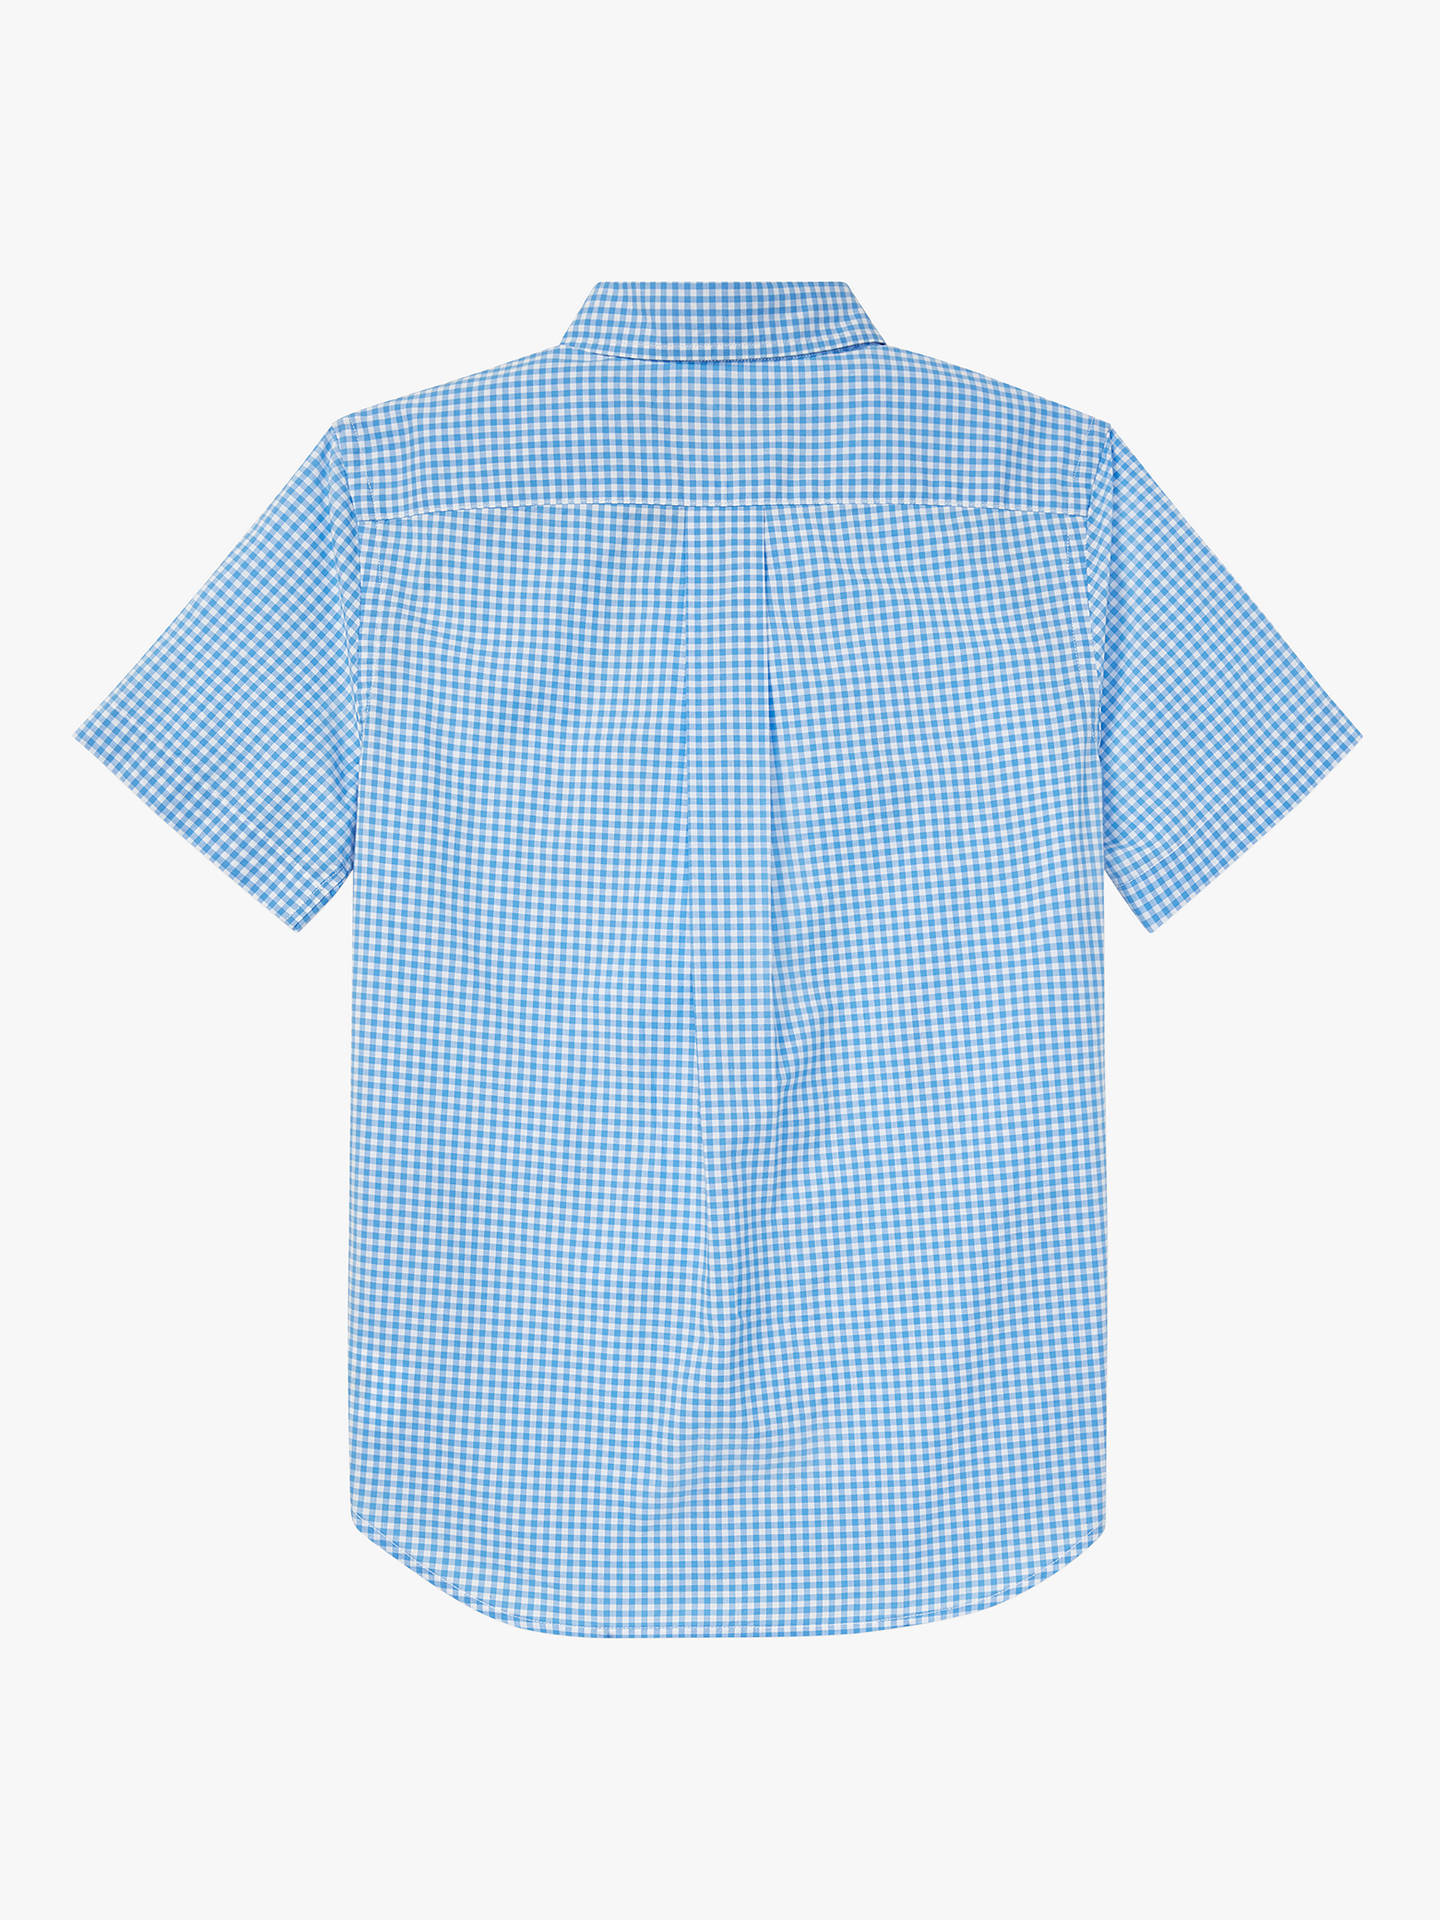 3f6d79b5e1 Polo Ralph Lauren Boys' Shirt, Blue at John Lewis & Partners